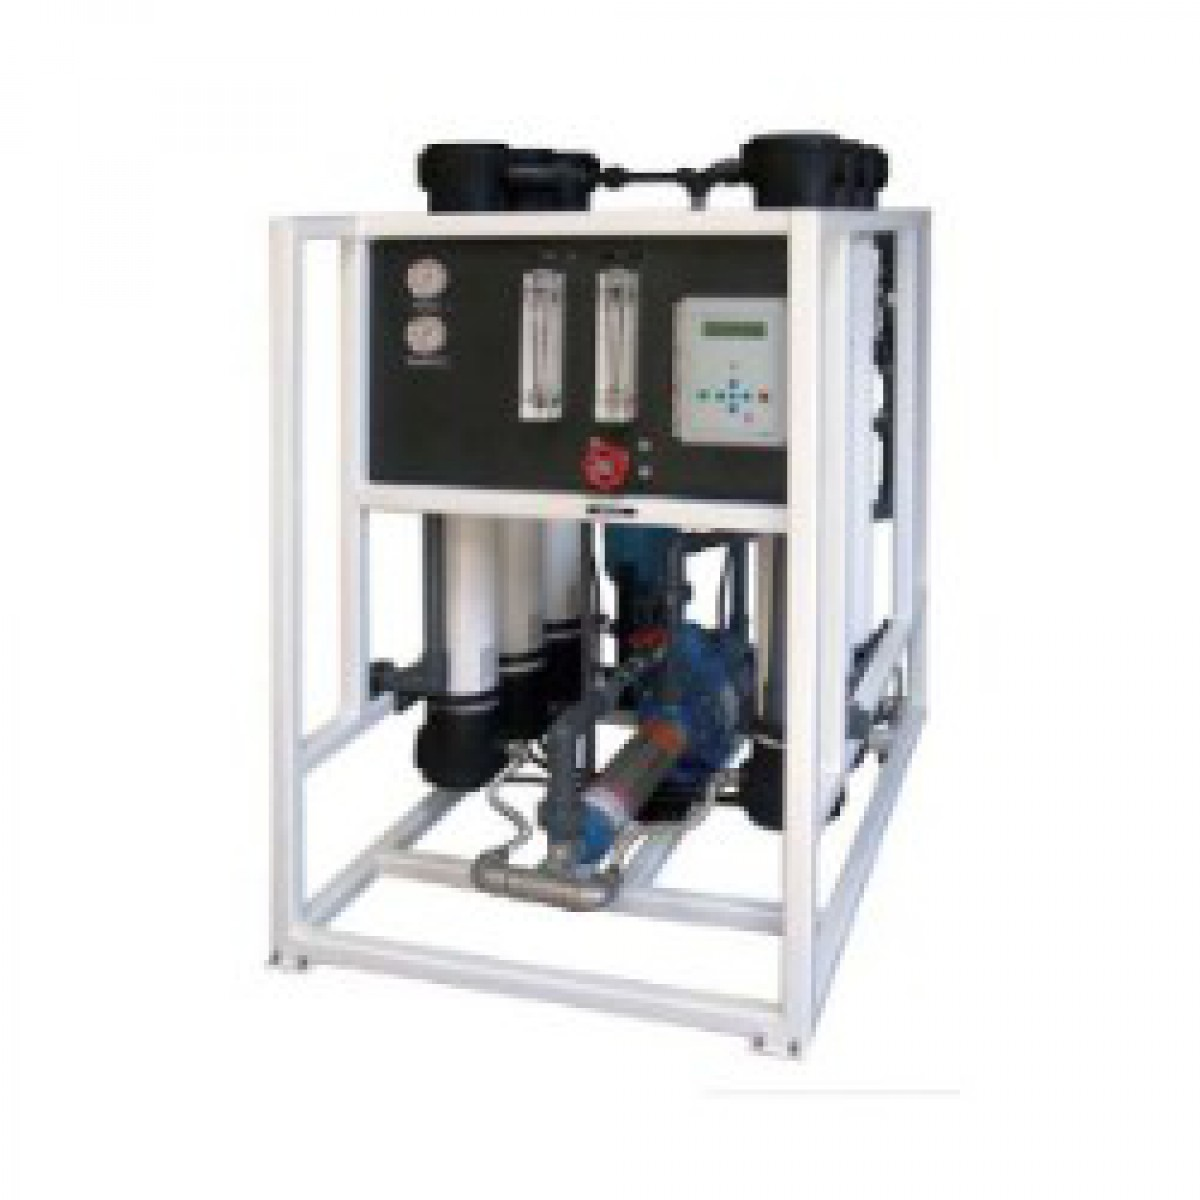 titan 20000 commercial reverse osmosis system. Black Bedroom Furniture Sets. Home Design Ideas